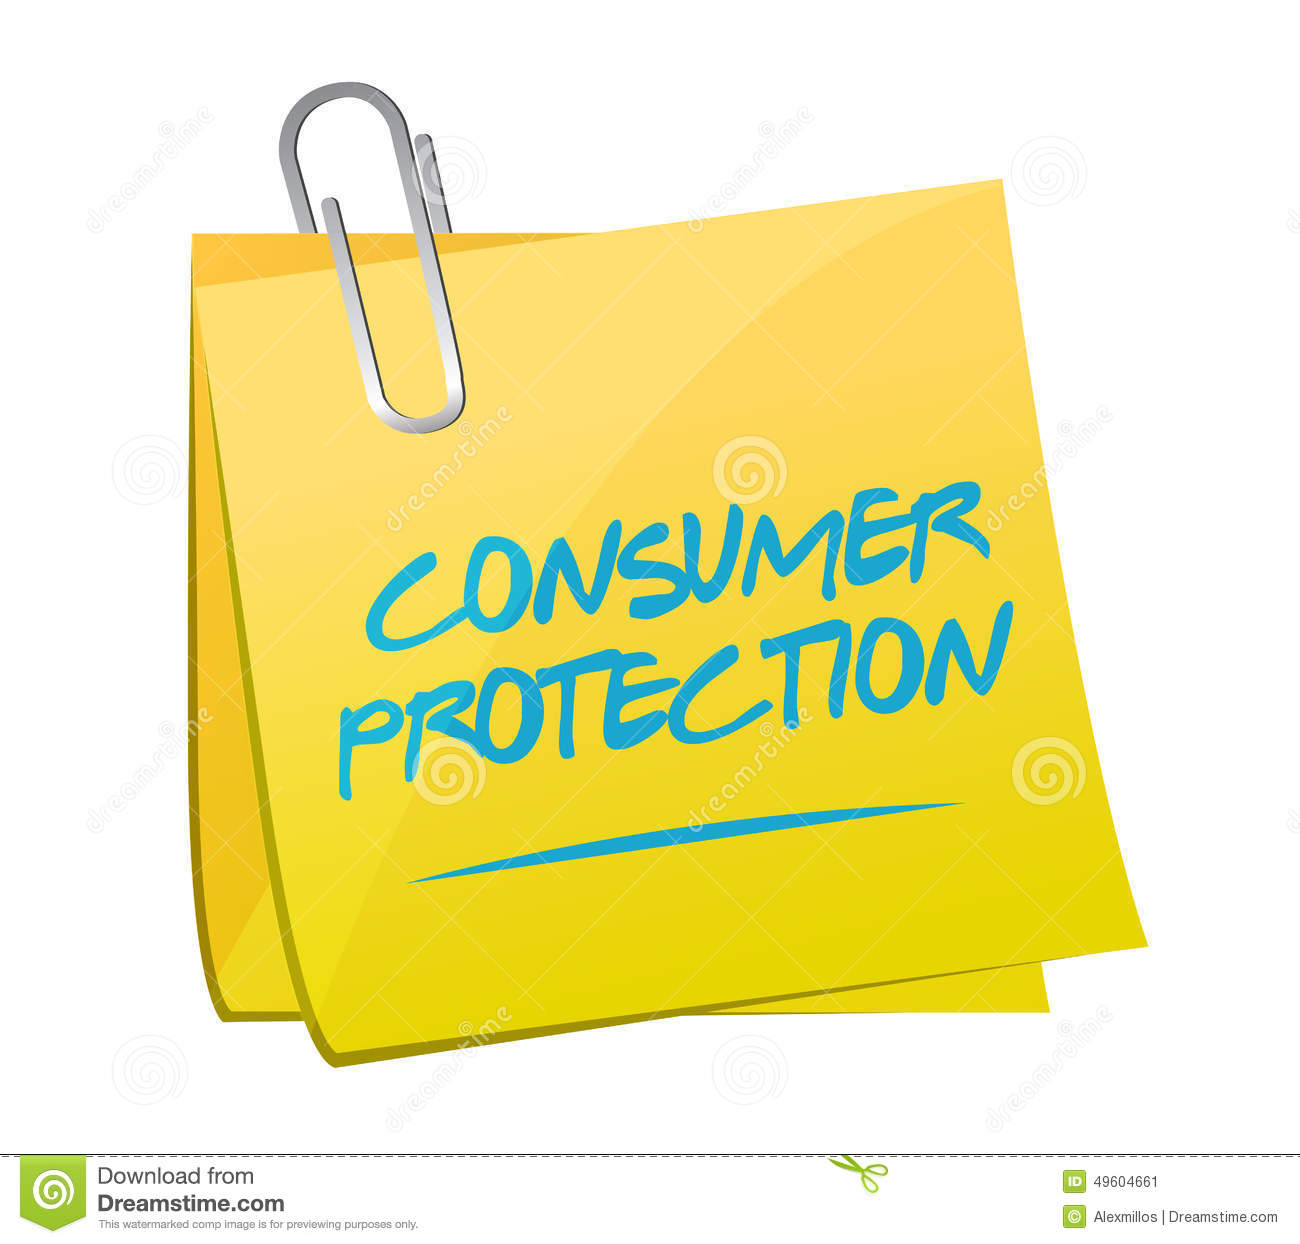 Consumer Protection Memo Illustration Stock Illustration ...